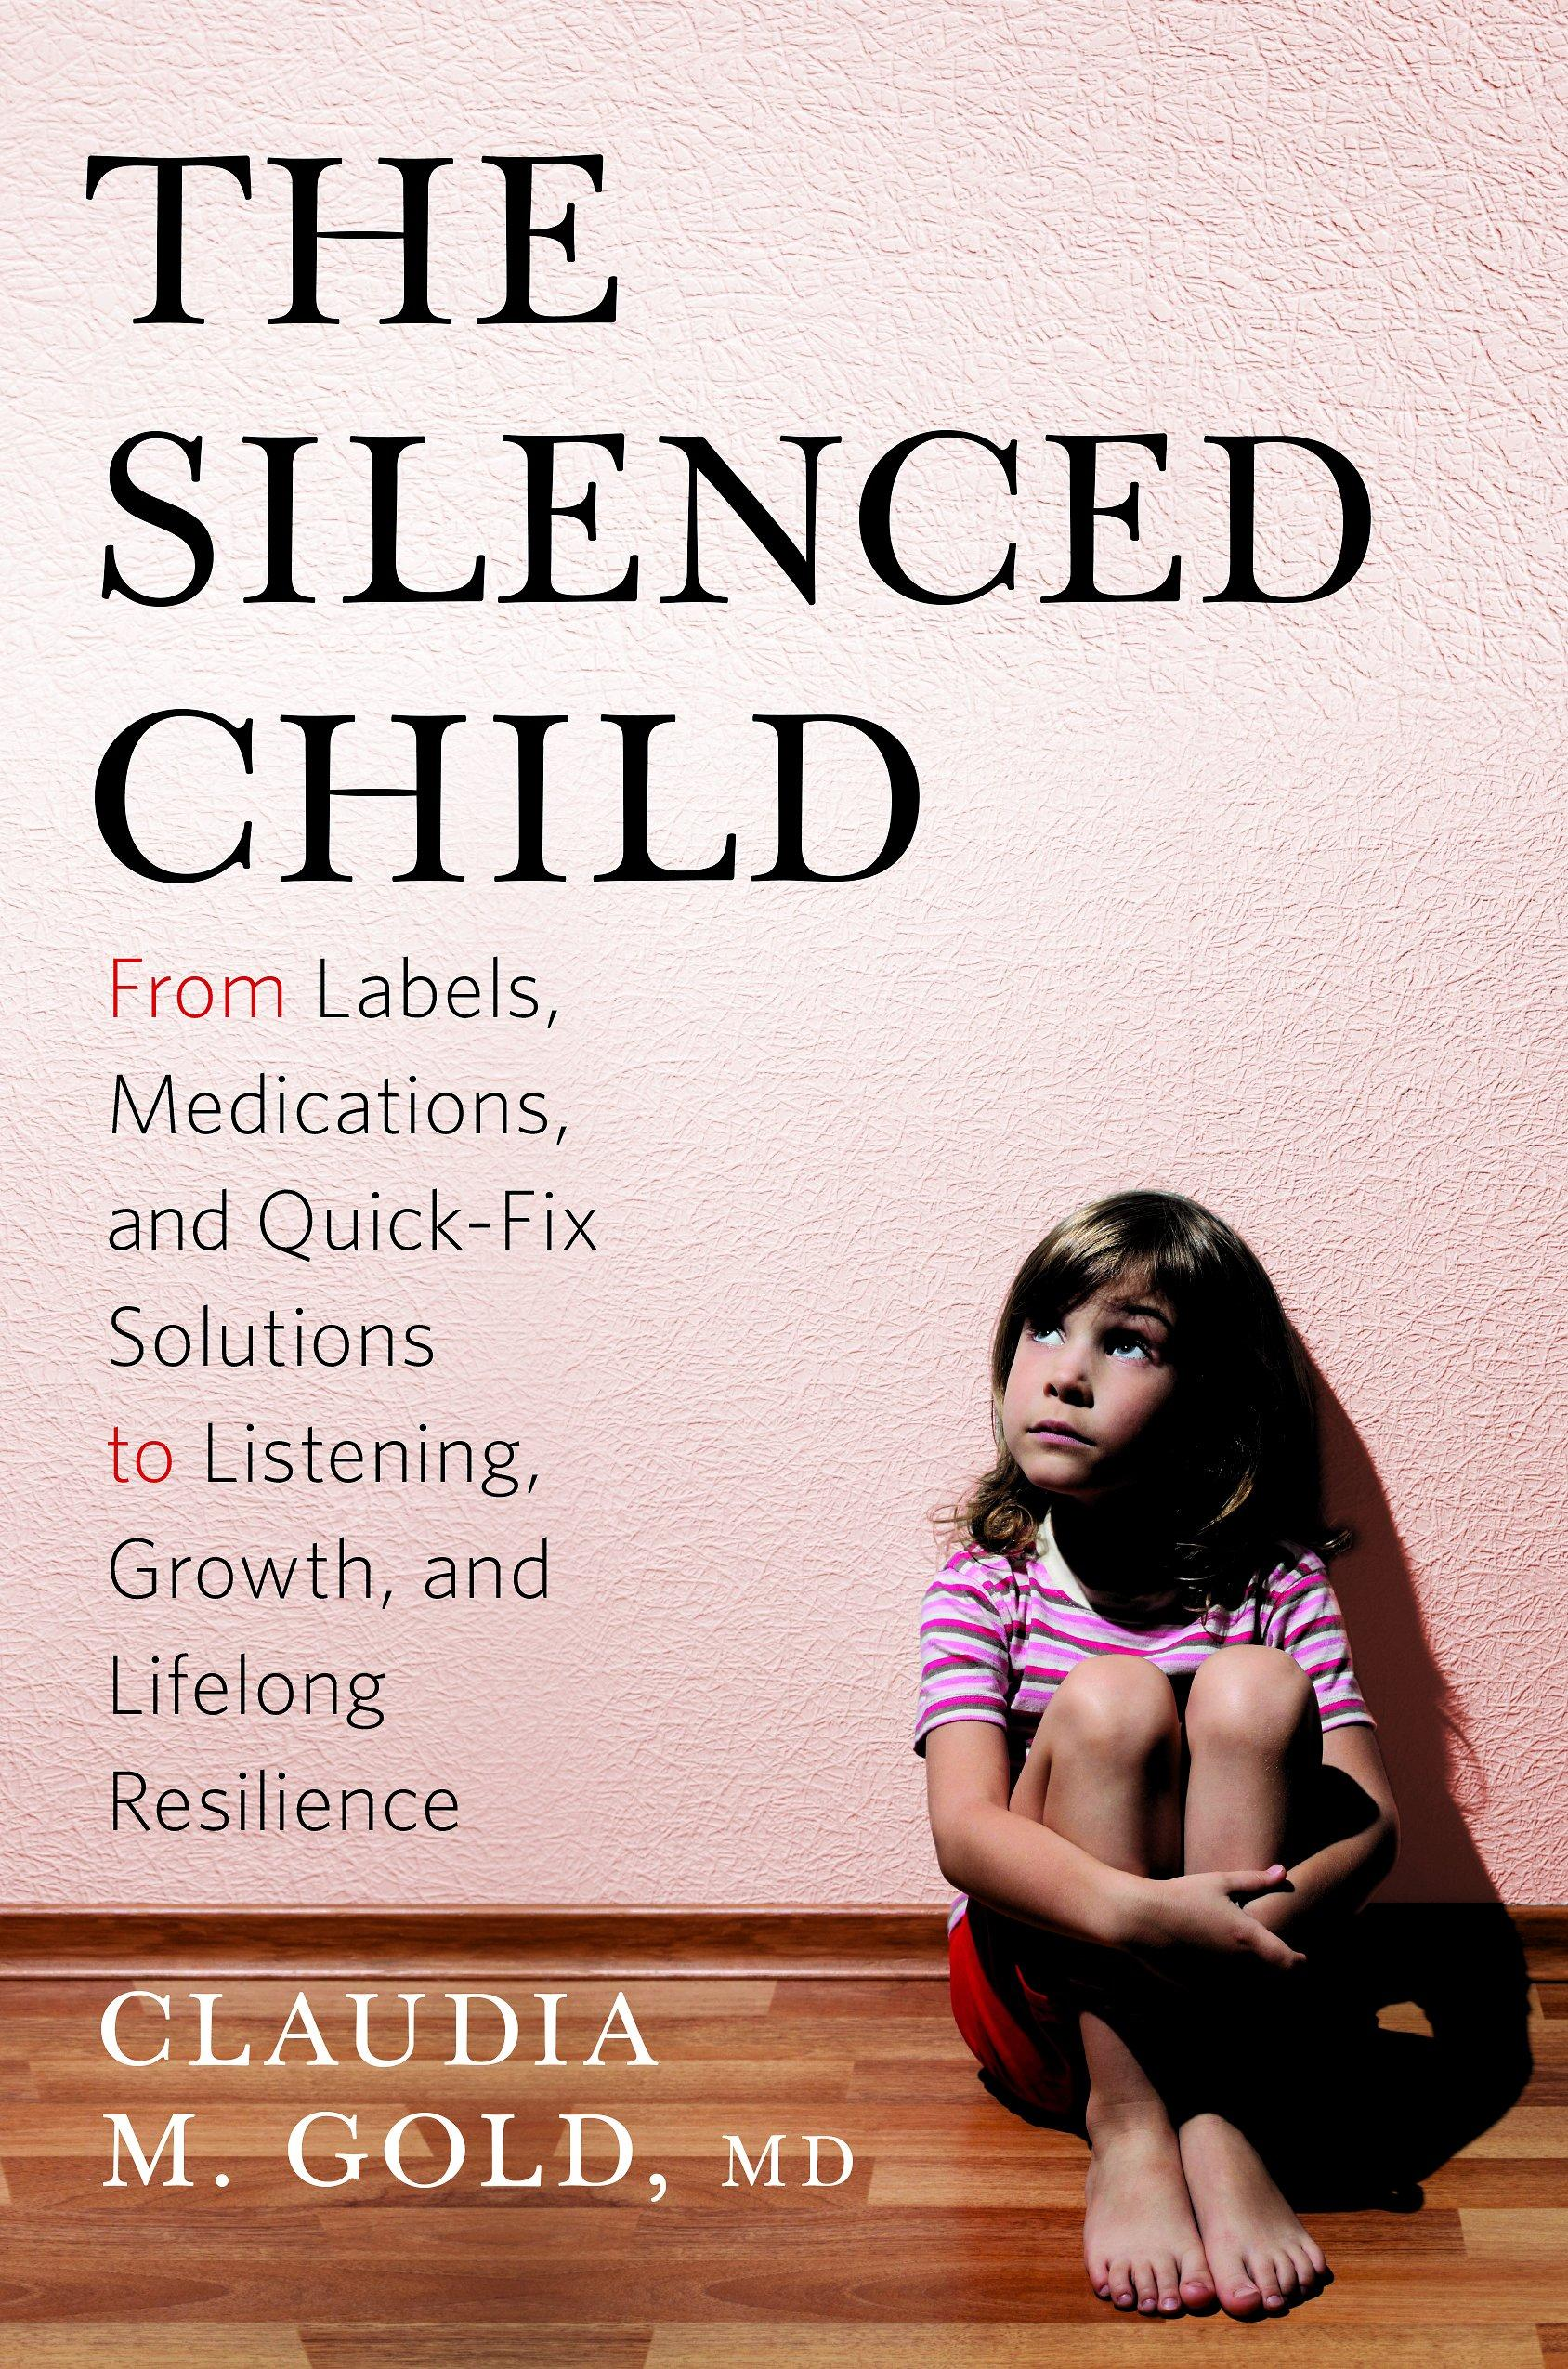 The Silenced Child: From Labels, Medications, and Quick-Fix Solutions to Listening, Growth, and Lifelong Resilience (A Merloyd Lawrence Book)